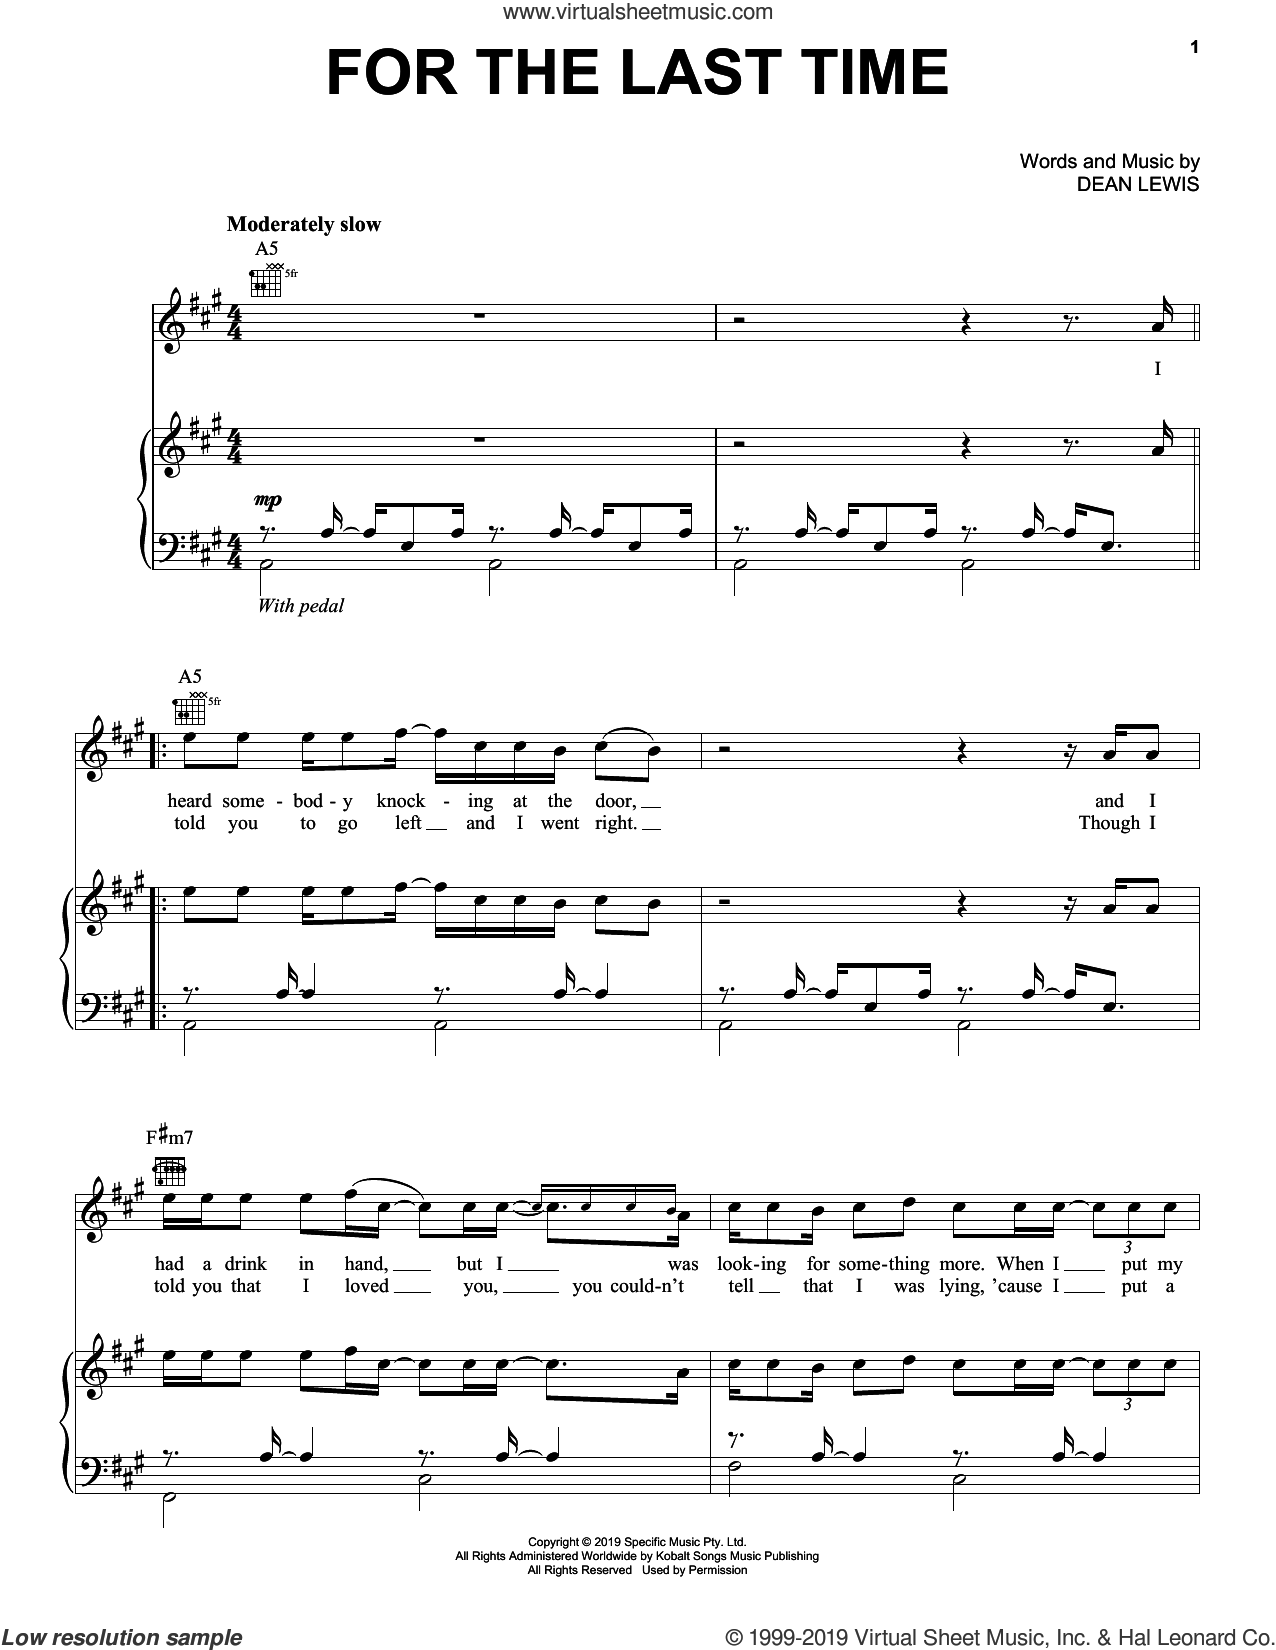 For The Last Time sheet music for voice, piano or guitar by Dean Lewis, intermediate skill level